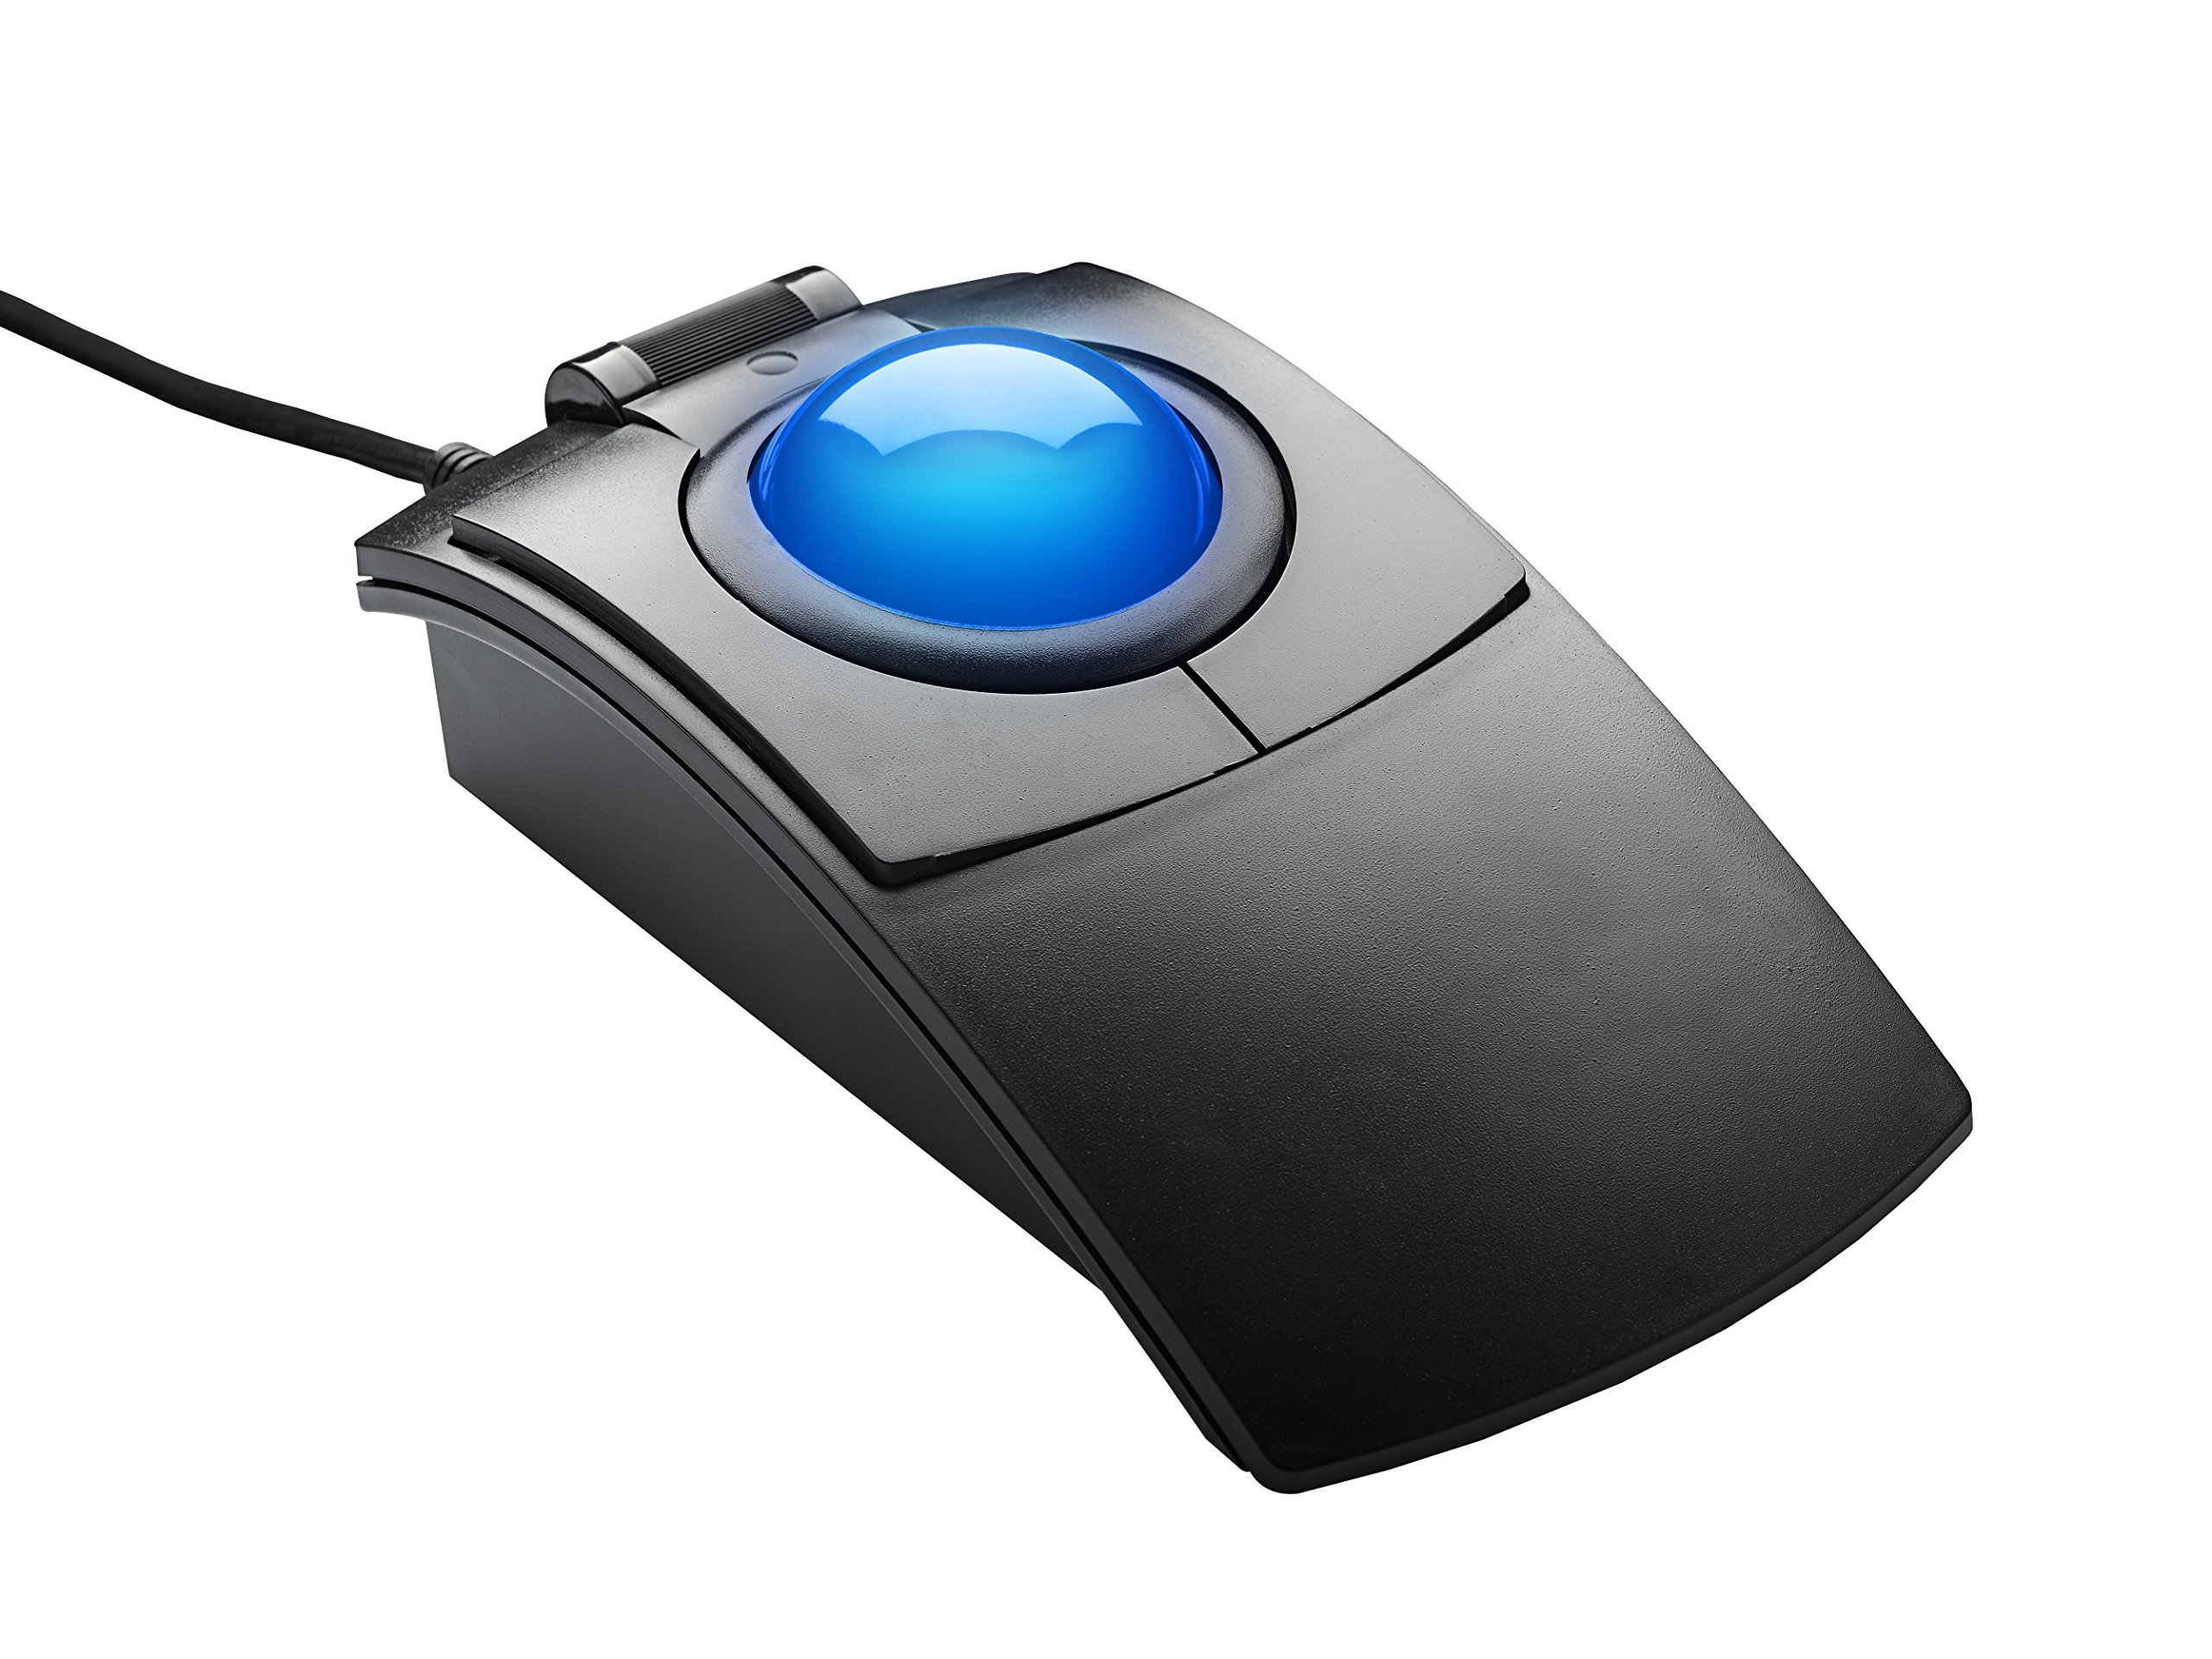 CST2545W(GL) (L-Trac Glow) USB Wired Ambidextrous High Performance Laser Ergonomic Backlit Trackball (Black) - Made in the USA